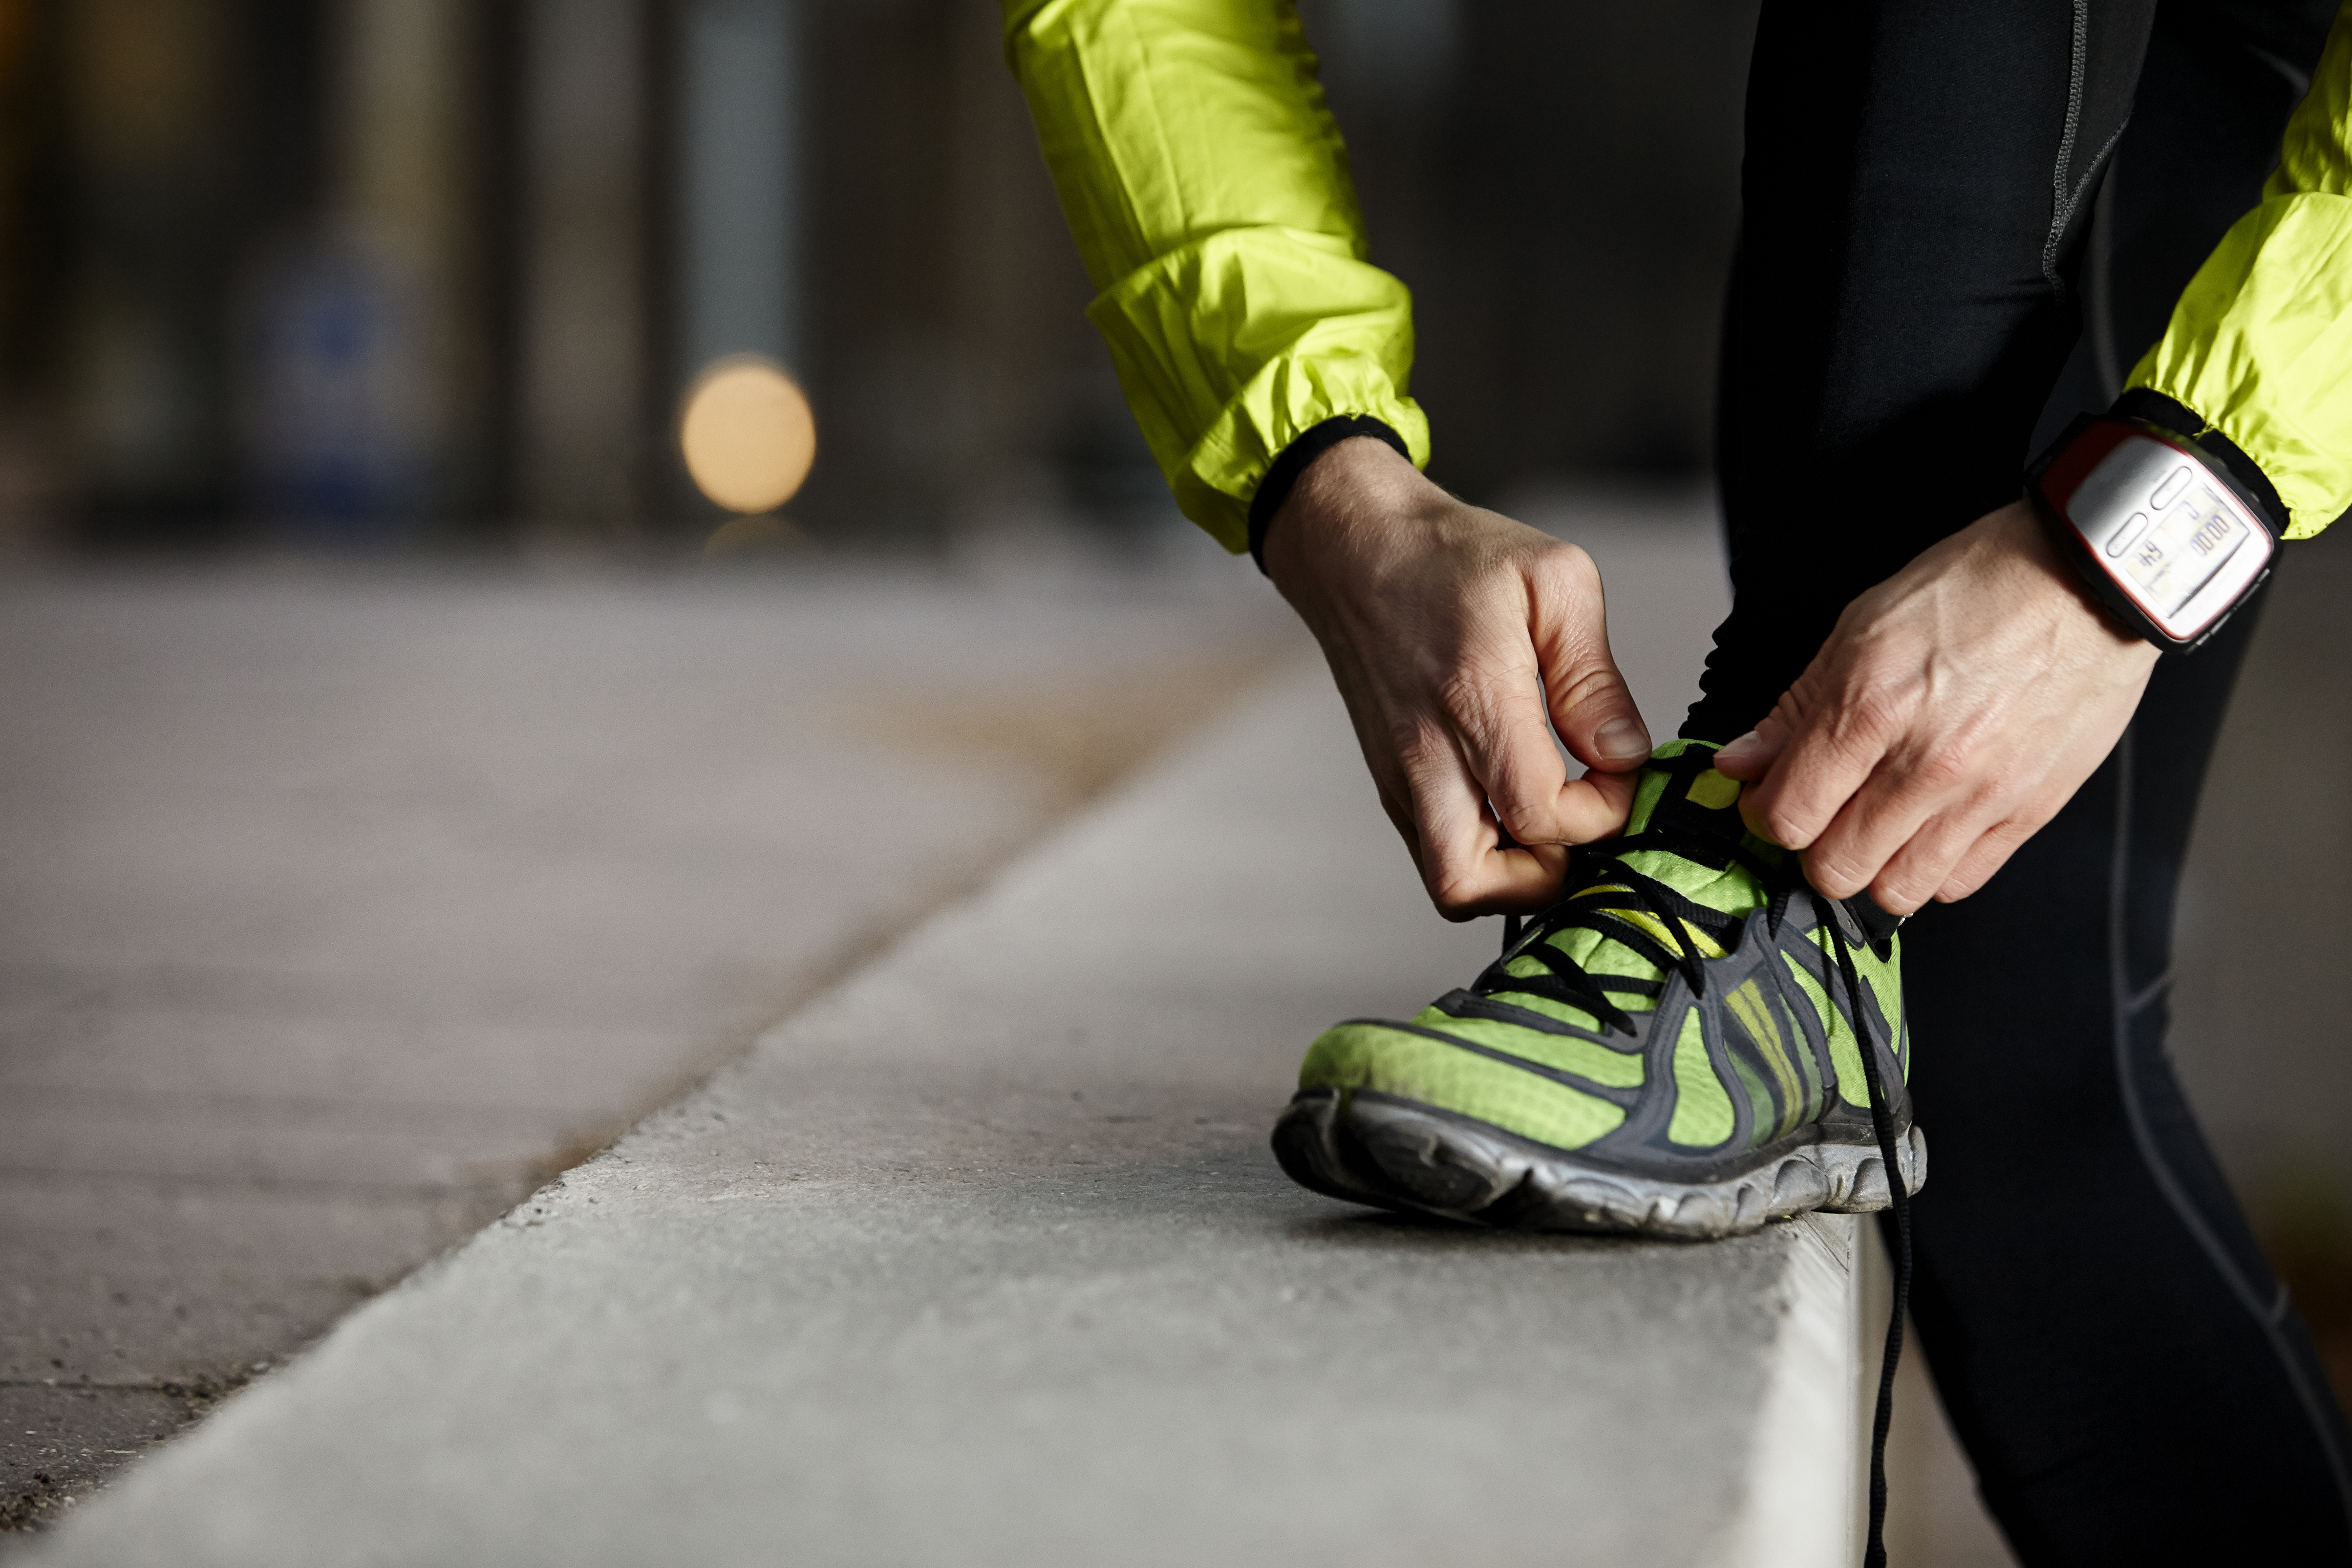 5 tips for exercising in cold weather